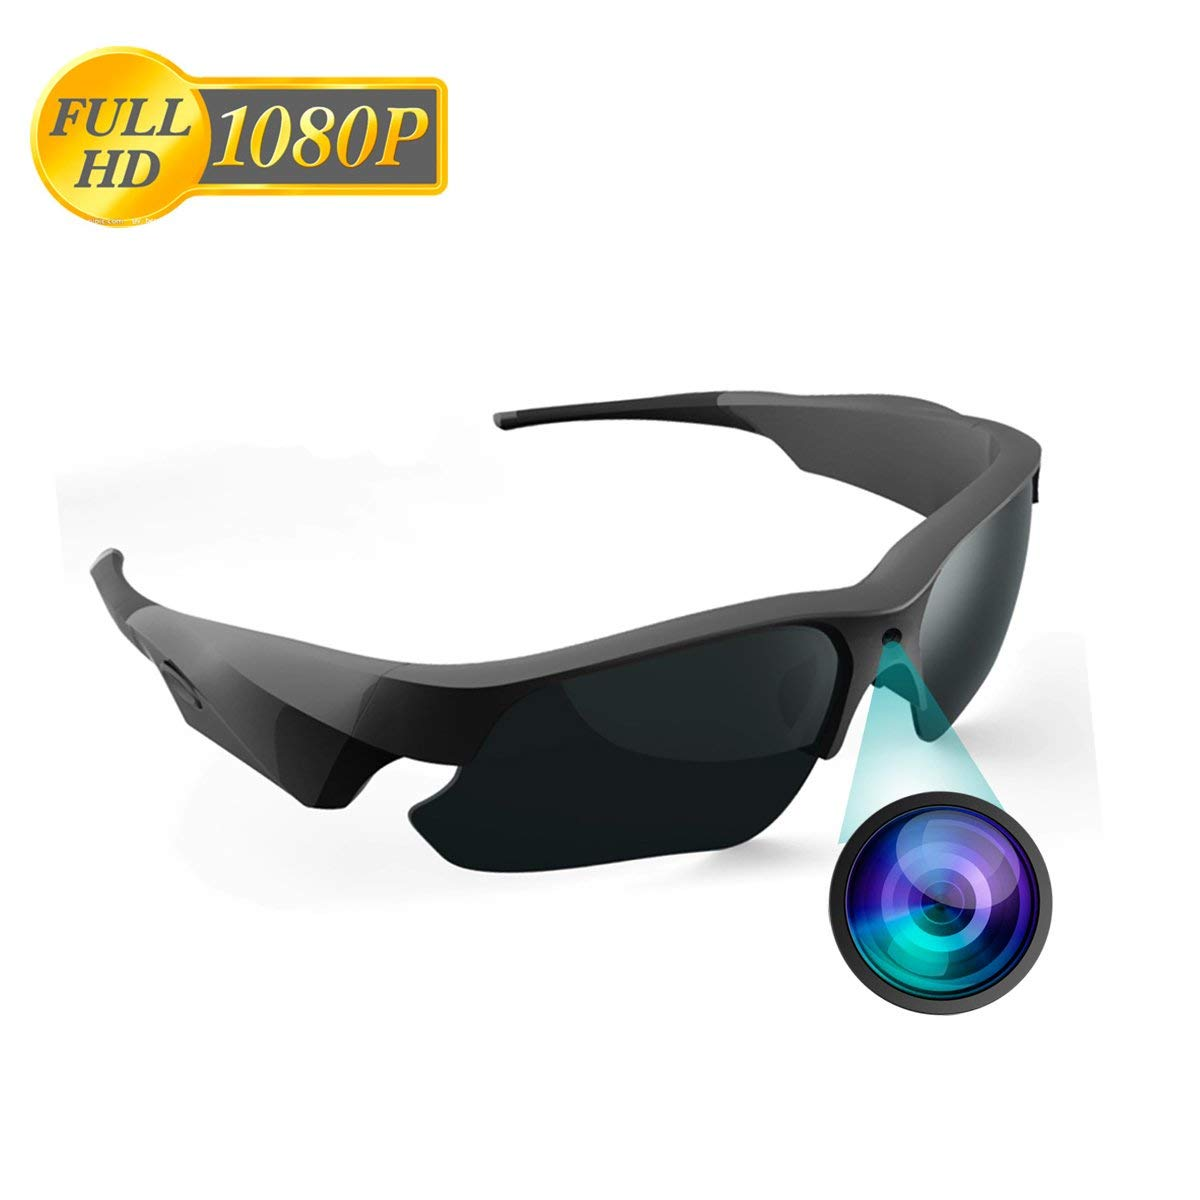 4541f8d4fa06 Get Quotations · CAMXSW Sunglasses Camera Full HD 1080P Video Recorder  Camera with UV Protection Polarized Lens for Outdoor